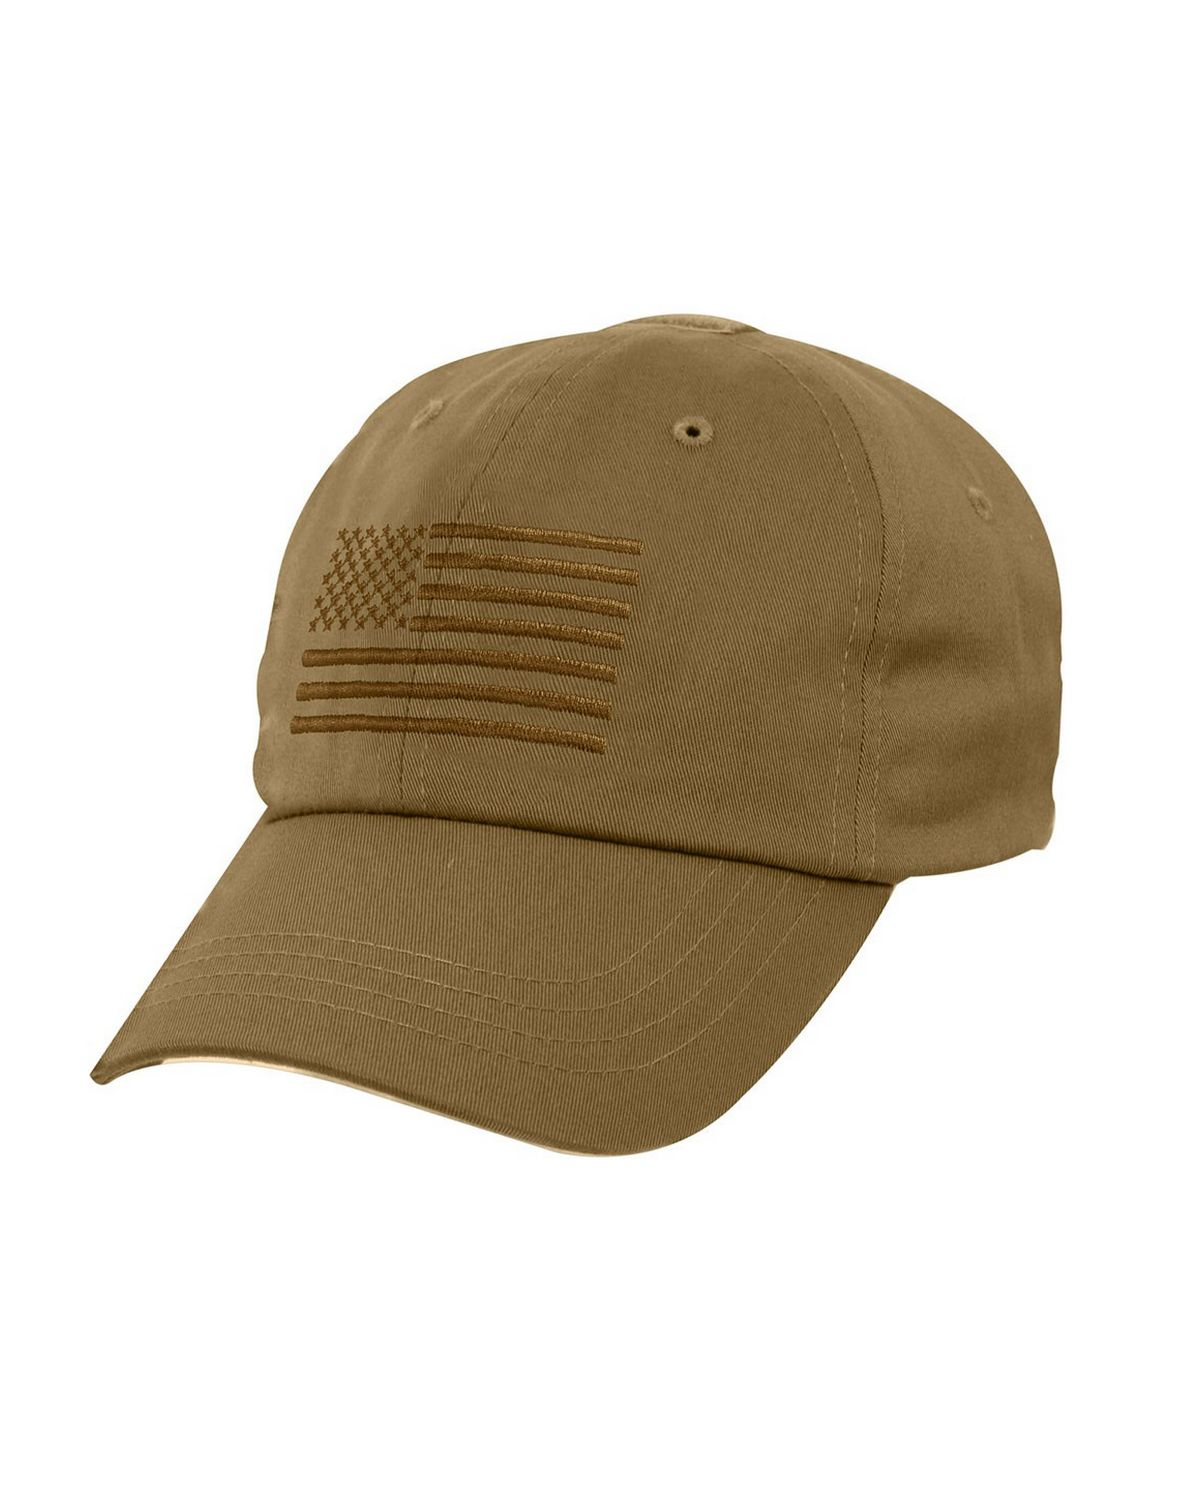 367763f1df7 Buy Rothco 4363 Tactical Operator Cap With US Flag